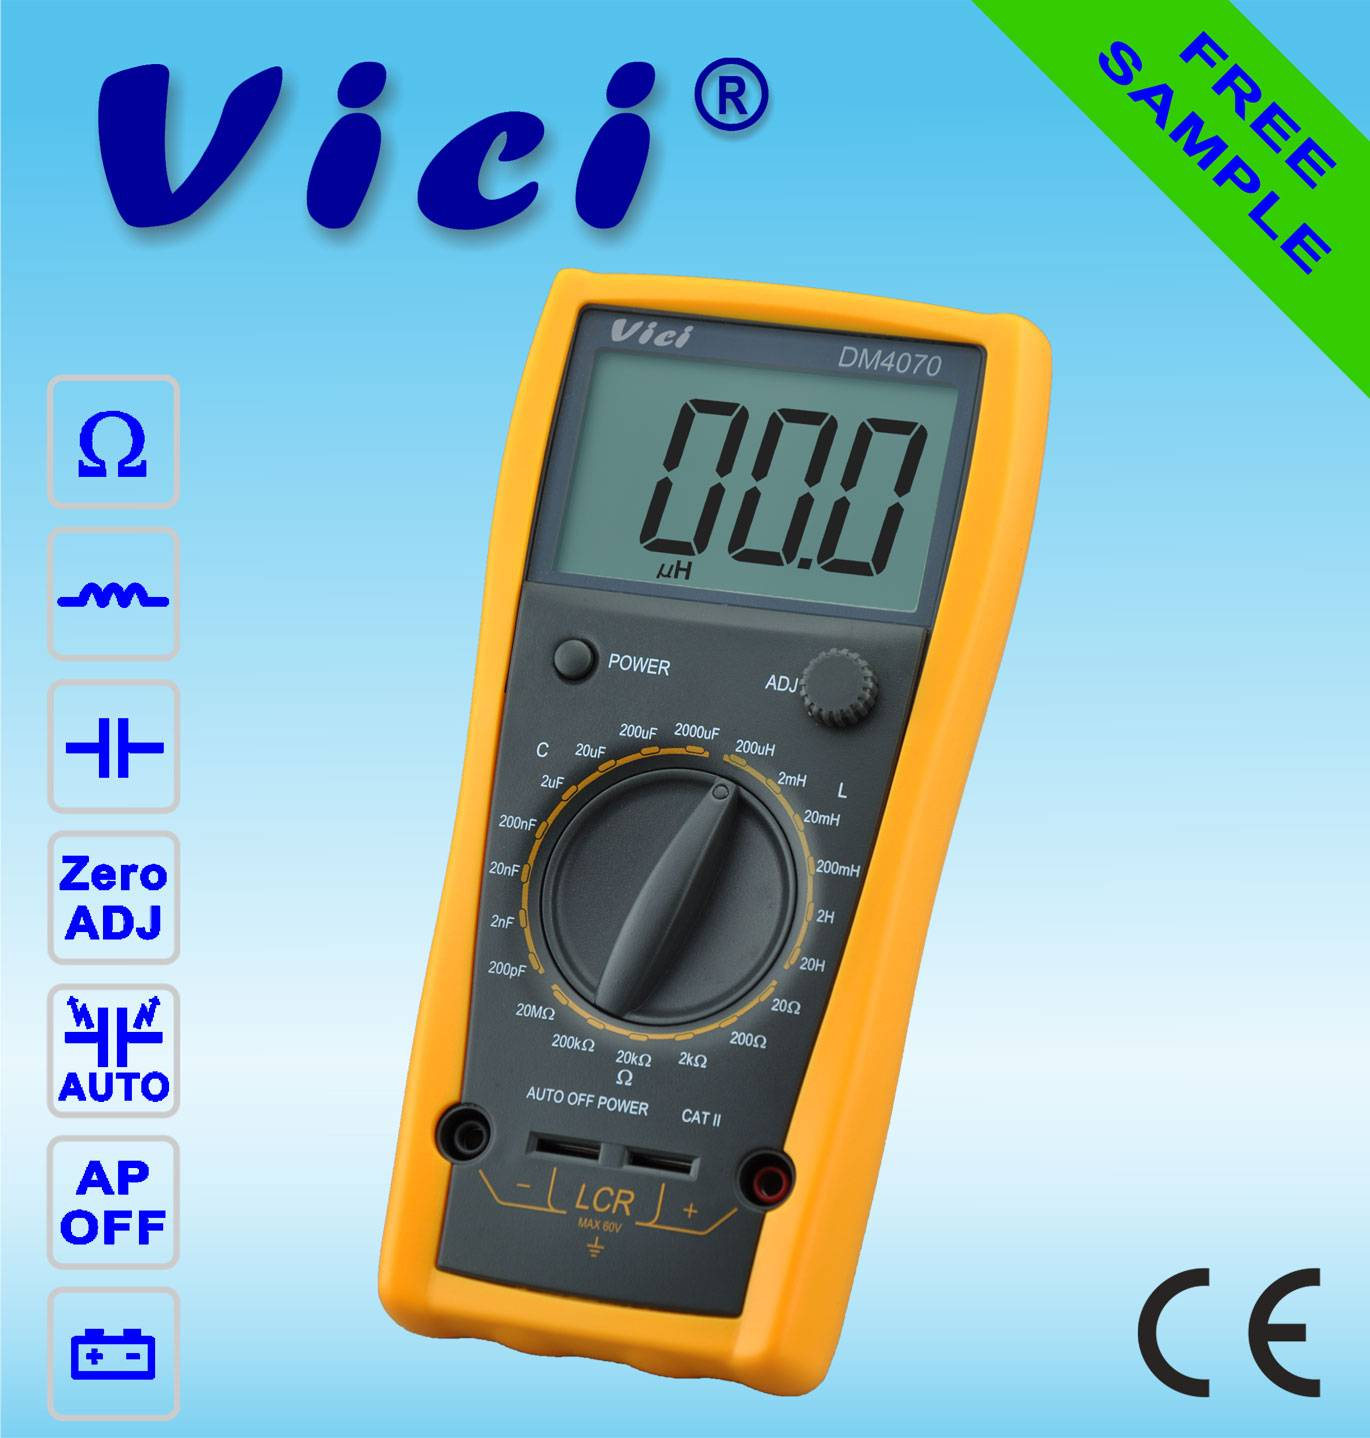 VICI DM4070  3 1/2 Digital LCR meter